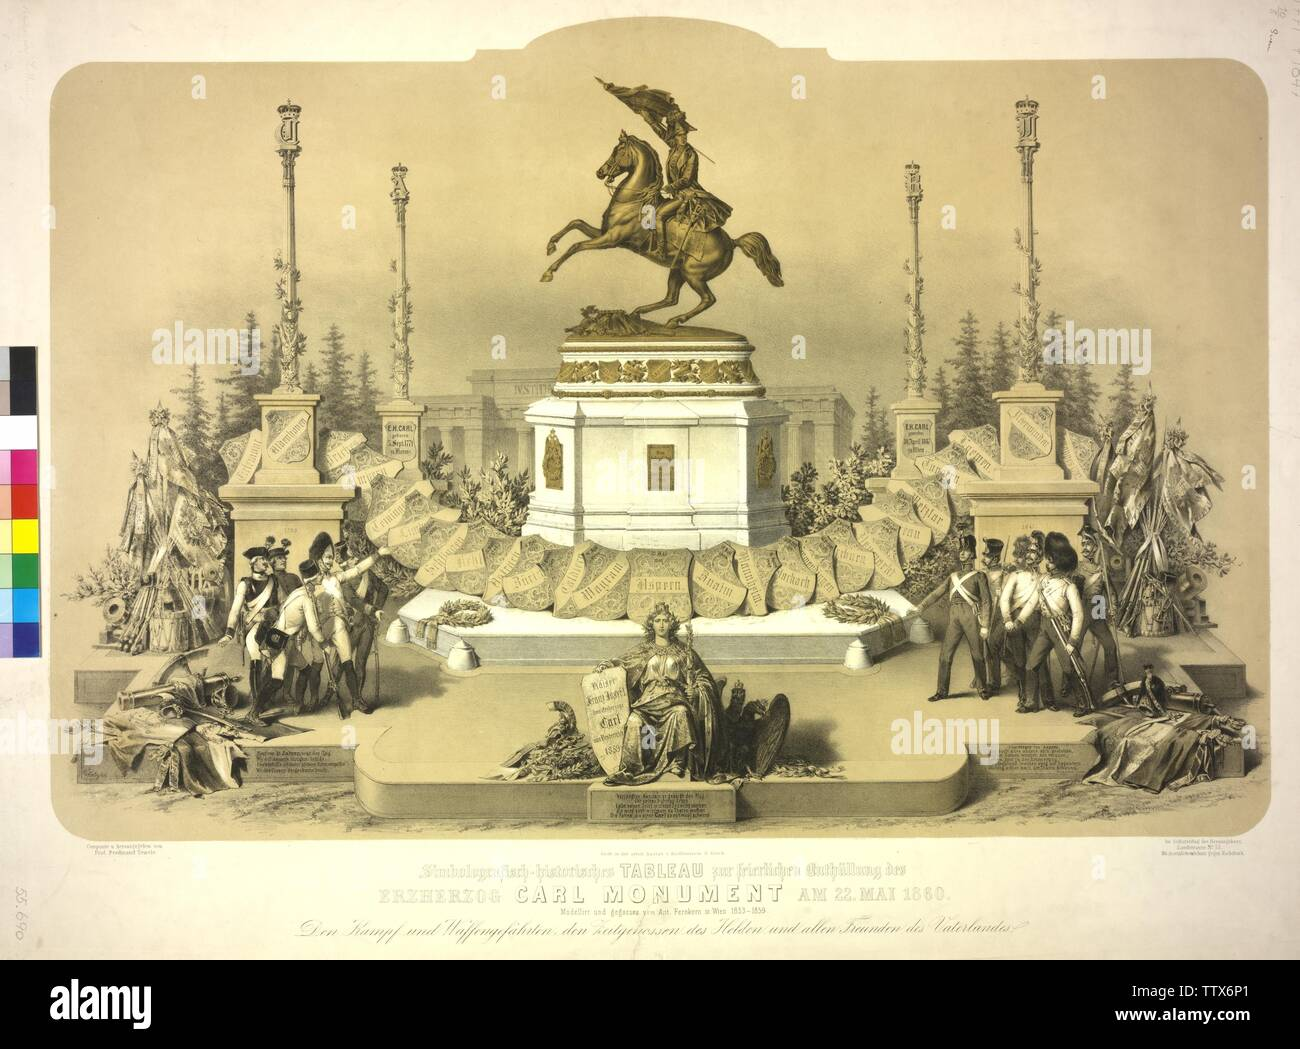 symbol-graphic historical tableau to the solemn uncovering of the Archduke Carl monument on 22. May 1860, equestrian monument on the Heldenplatz (square) in Vienna for Karl, Archduke of Austria, by Anton Dominic von Fernkorn. toned lithograph by Vinzenz Katzler based on a draft by Ferdinand Tewele, Additional-Rights-Clearance-Info-Not-Available - Stock Image